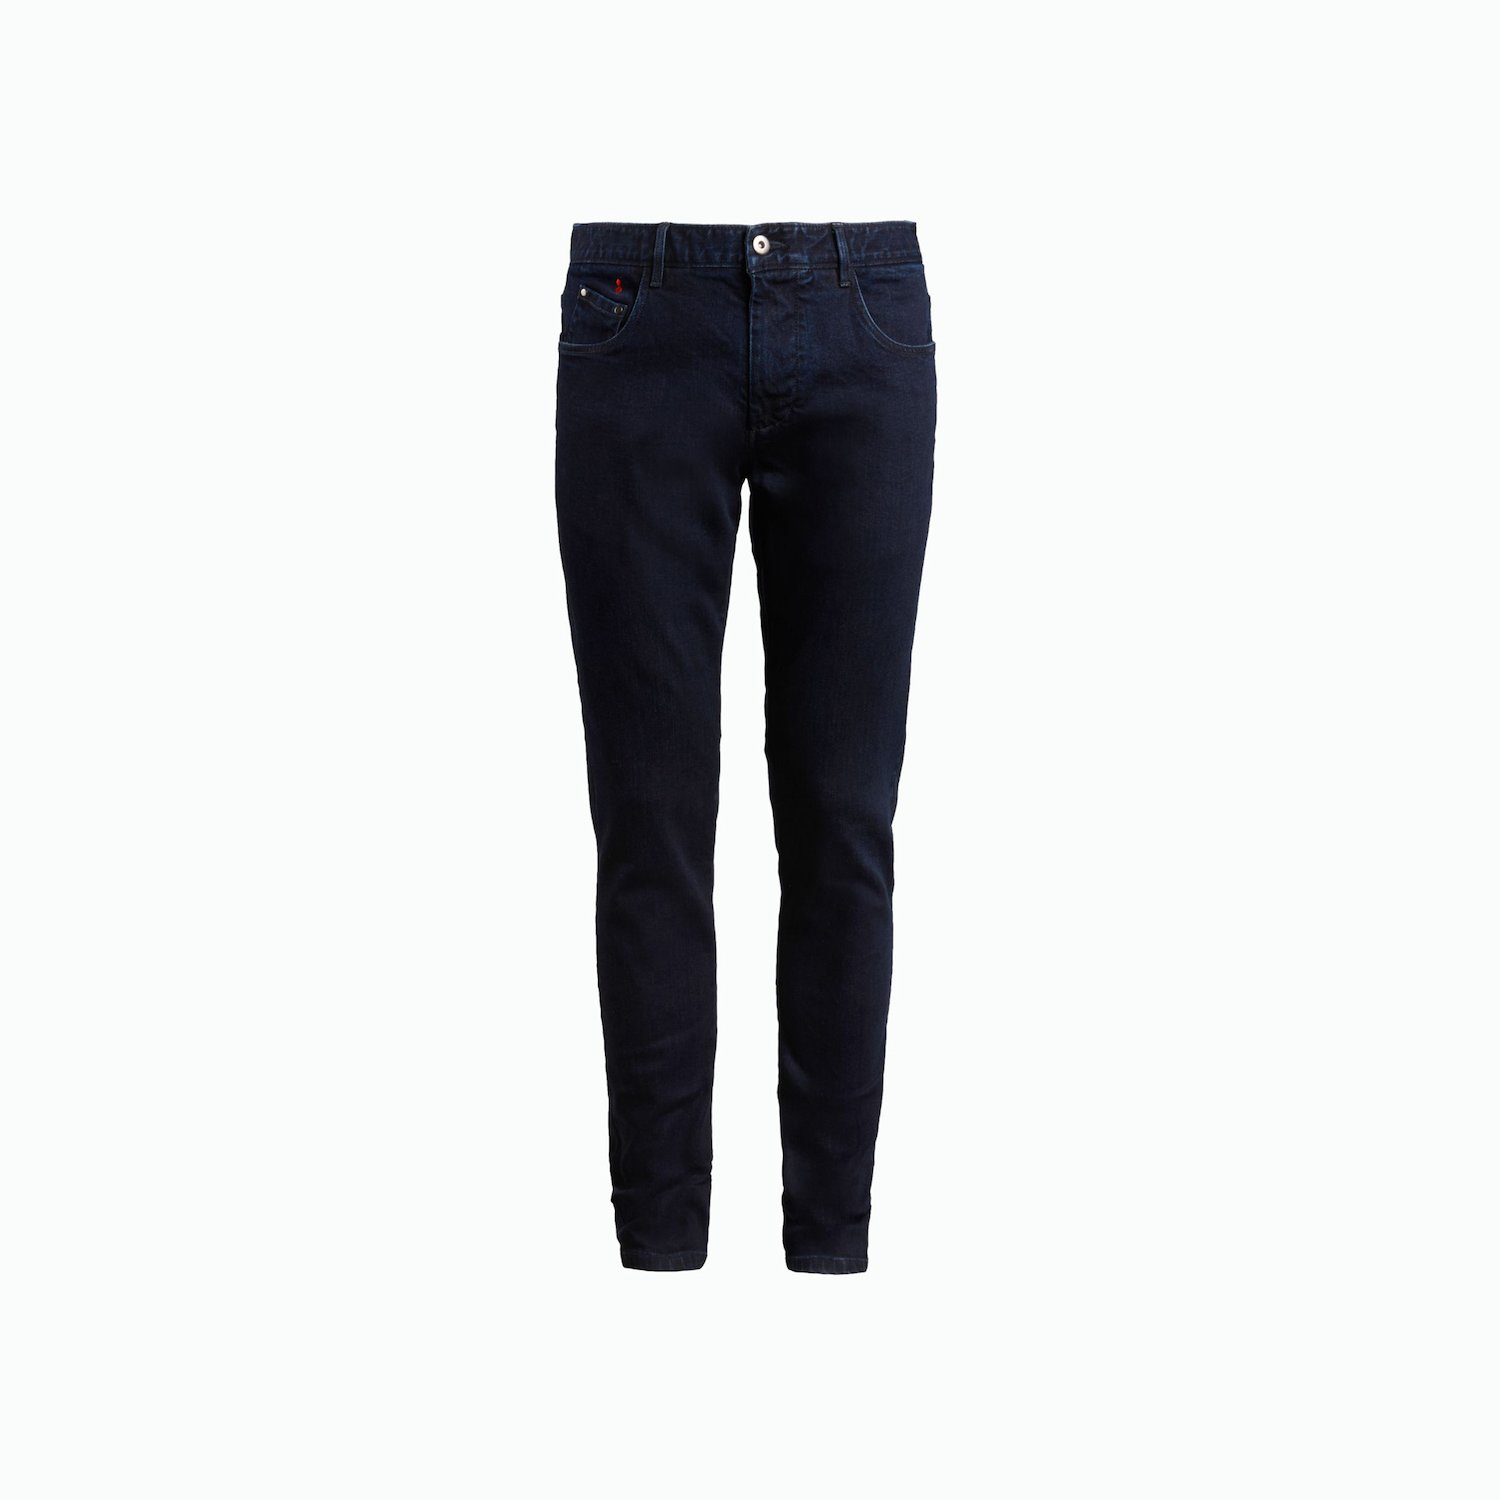 Hose B11 - Dark denim